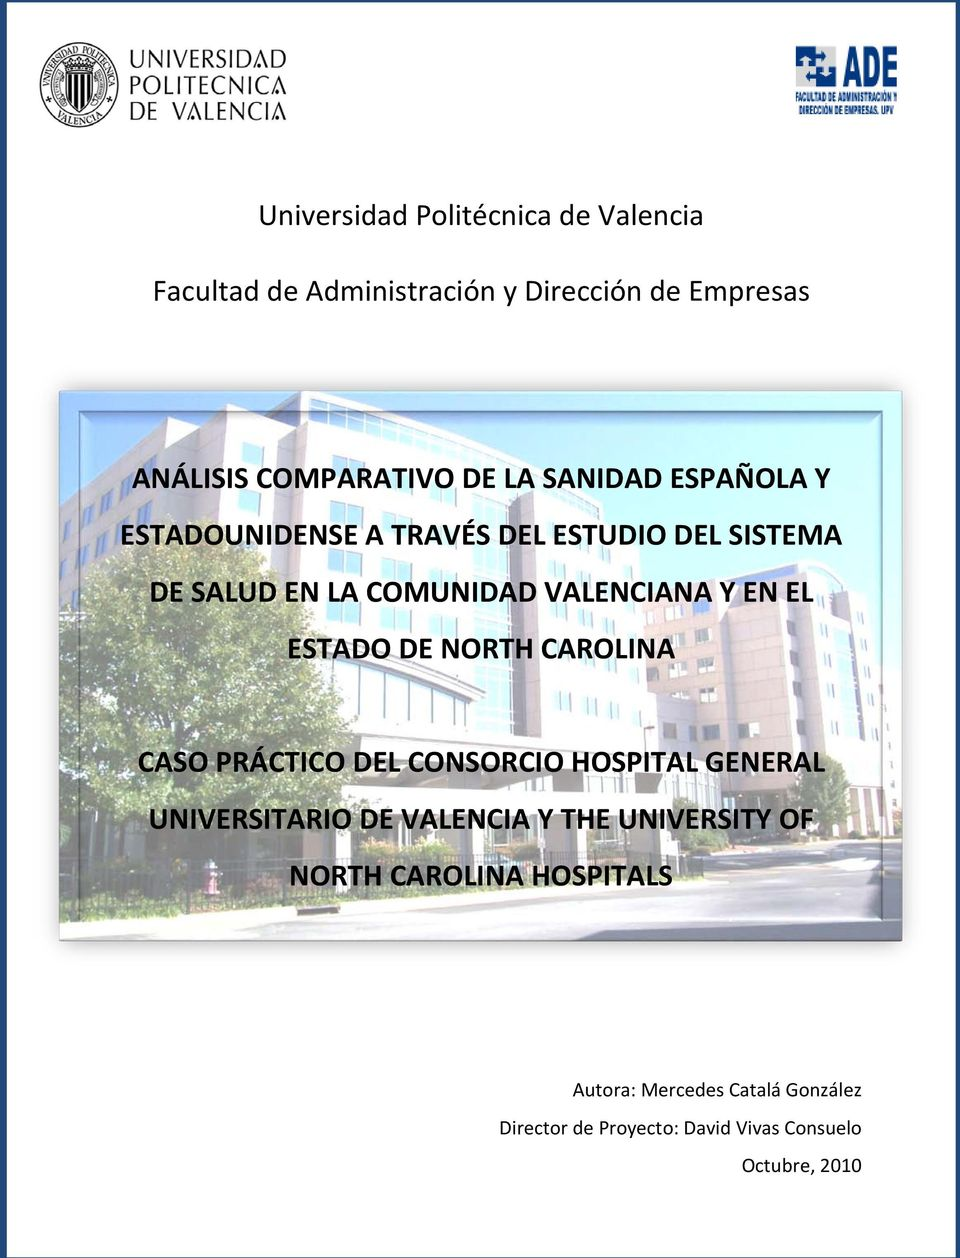 ESTADO DE NORTH CAROLINA CASO PRÁCTICO DEL CONSORCIO HOSPITAL GENERAL UNIVERSITARIO DE VALENCIA Y THE UNIVERSITY